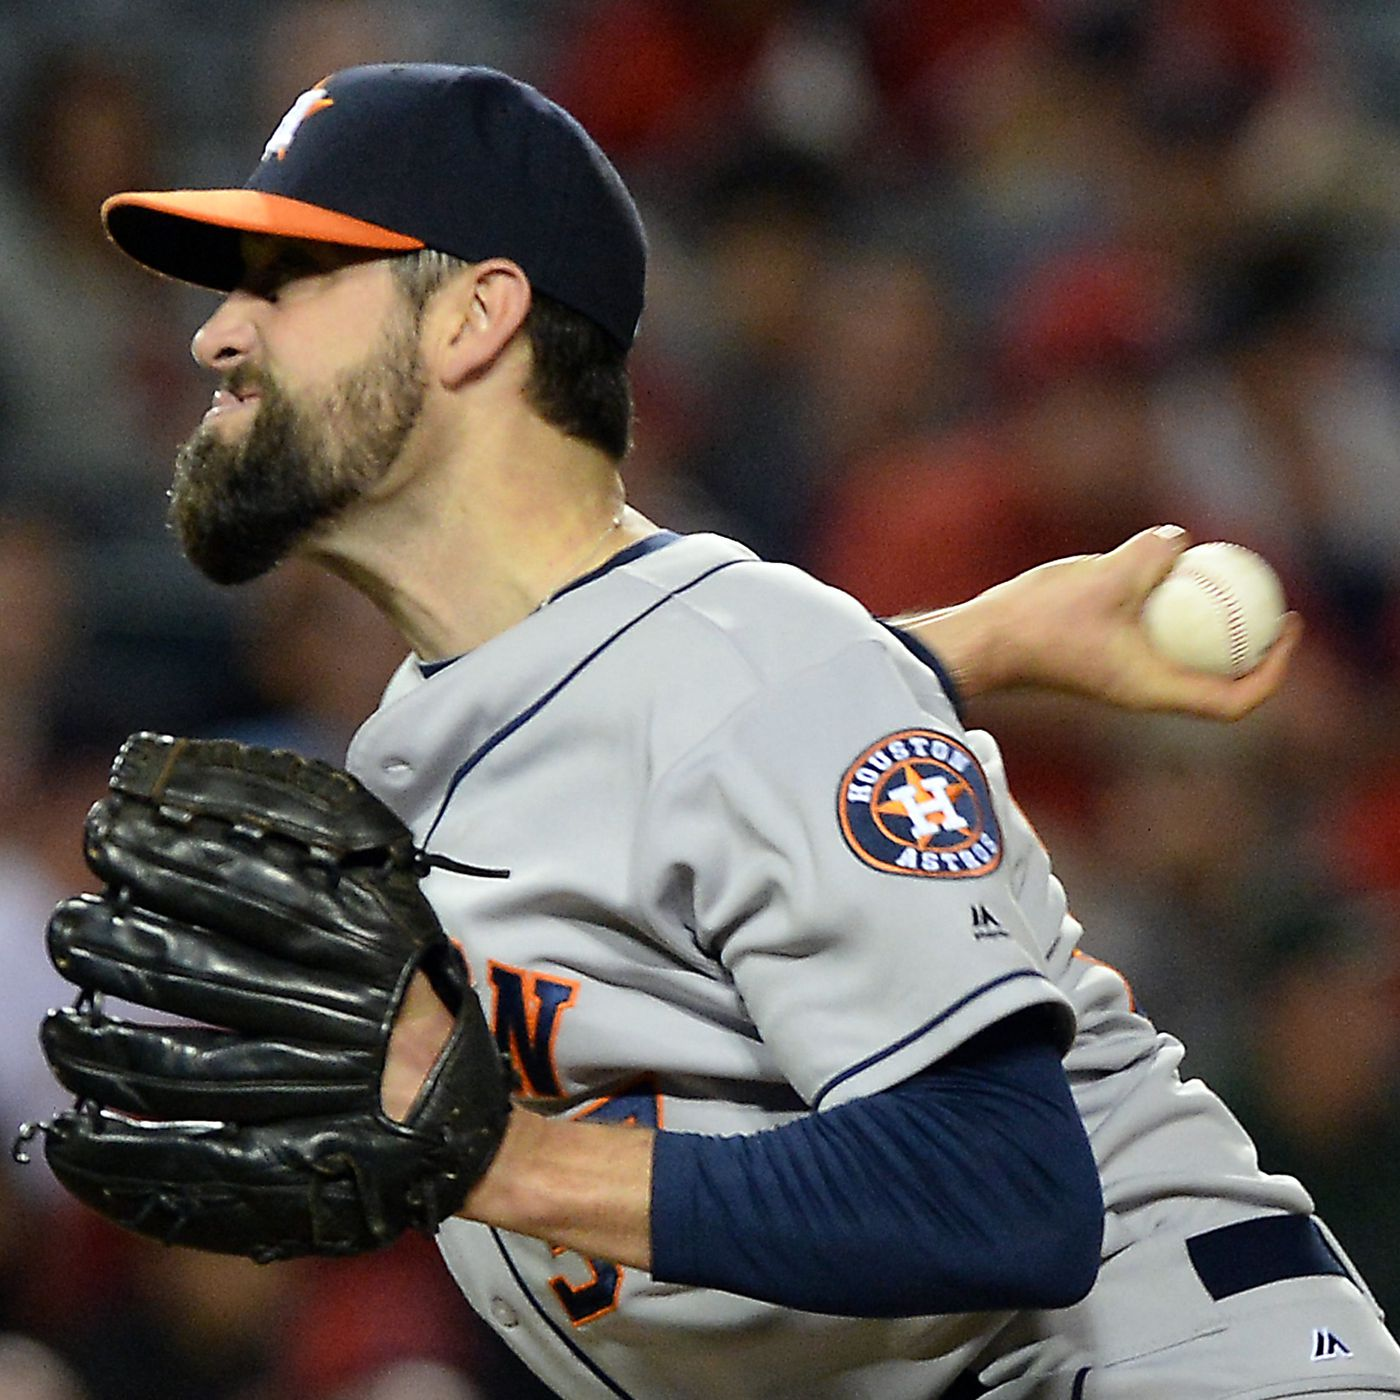 85931a899 Phillies Acquire RHP Pat Neshek from Astros - The Good Phight